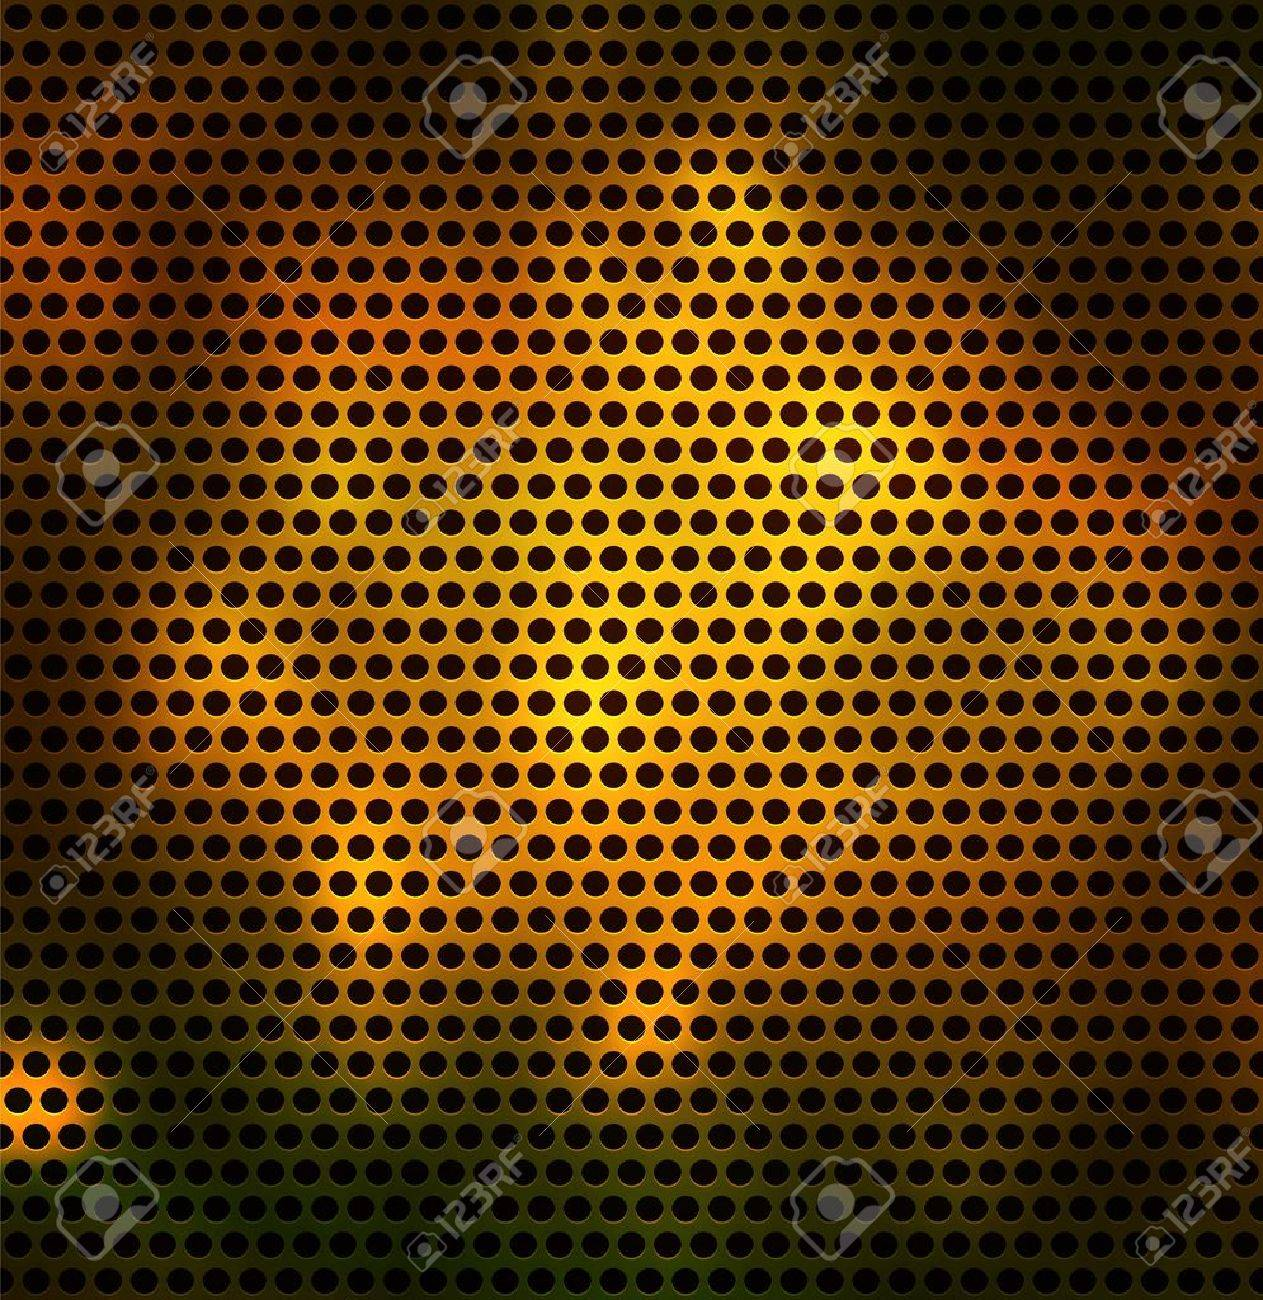 Metal grid with round holes. Seamless vector background - 11620625